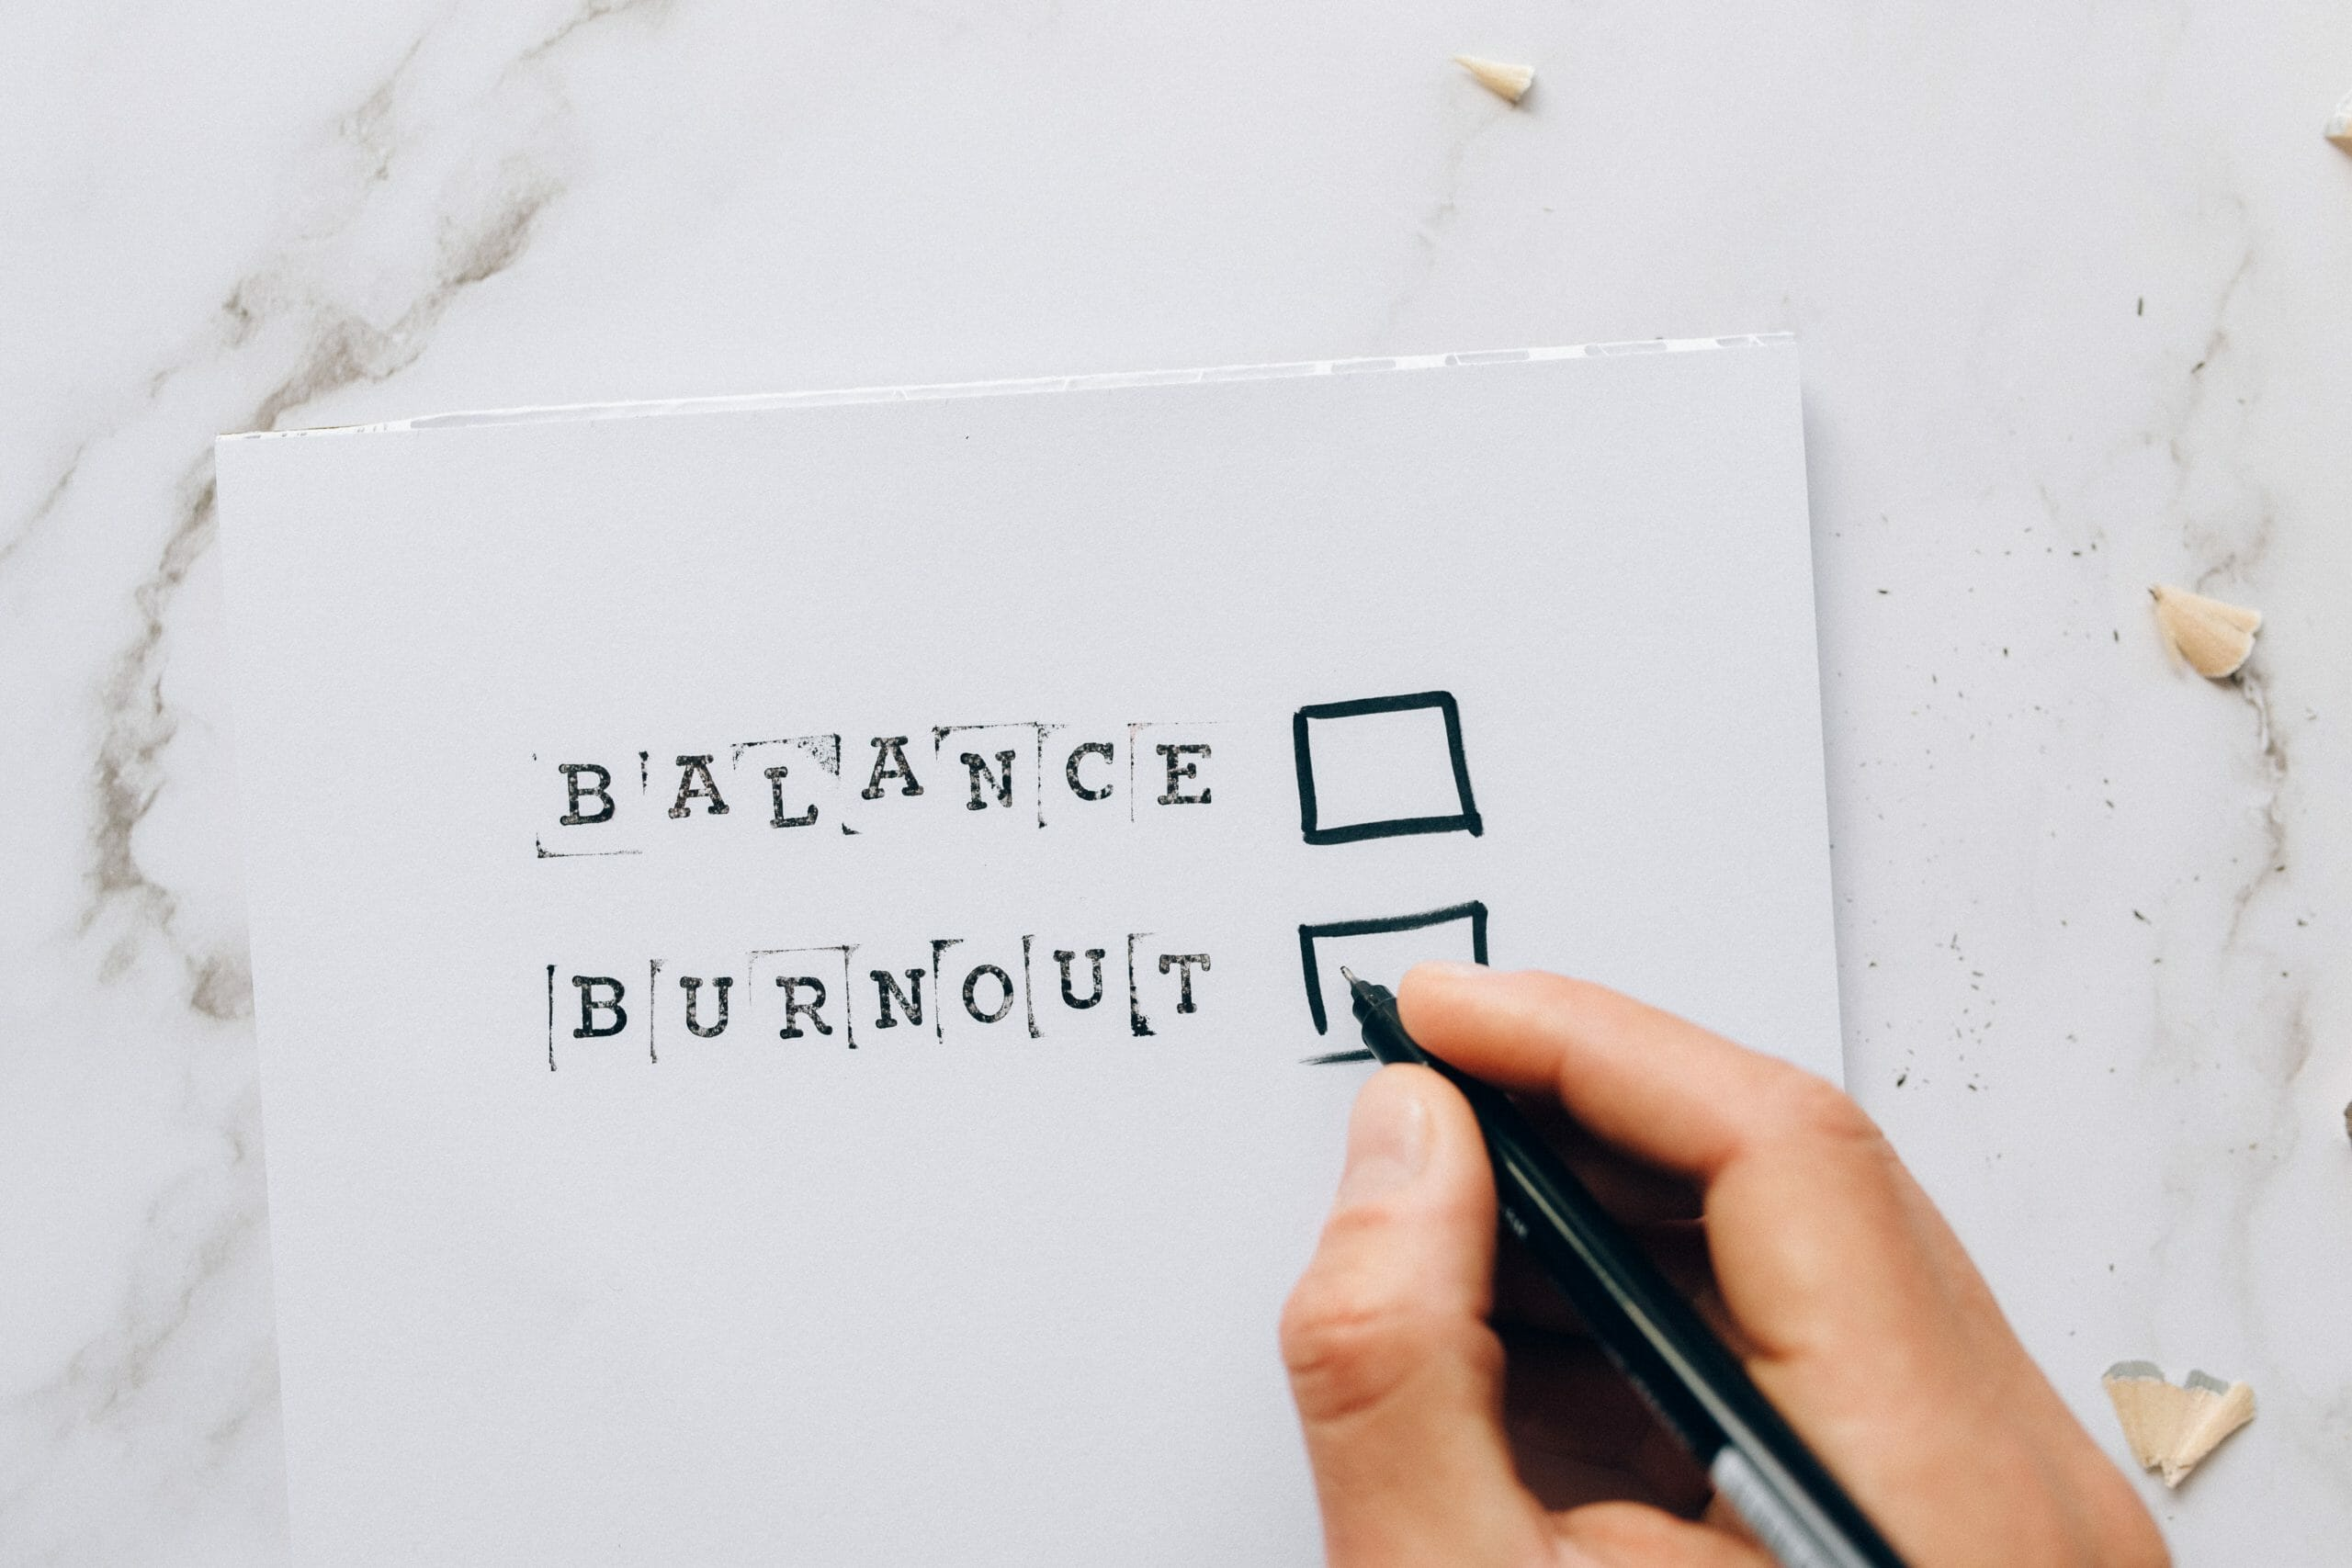 5 Tips to Ensure You Don't Burnout Your First Months on the Job